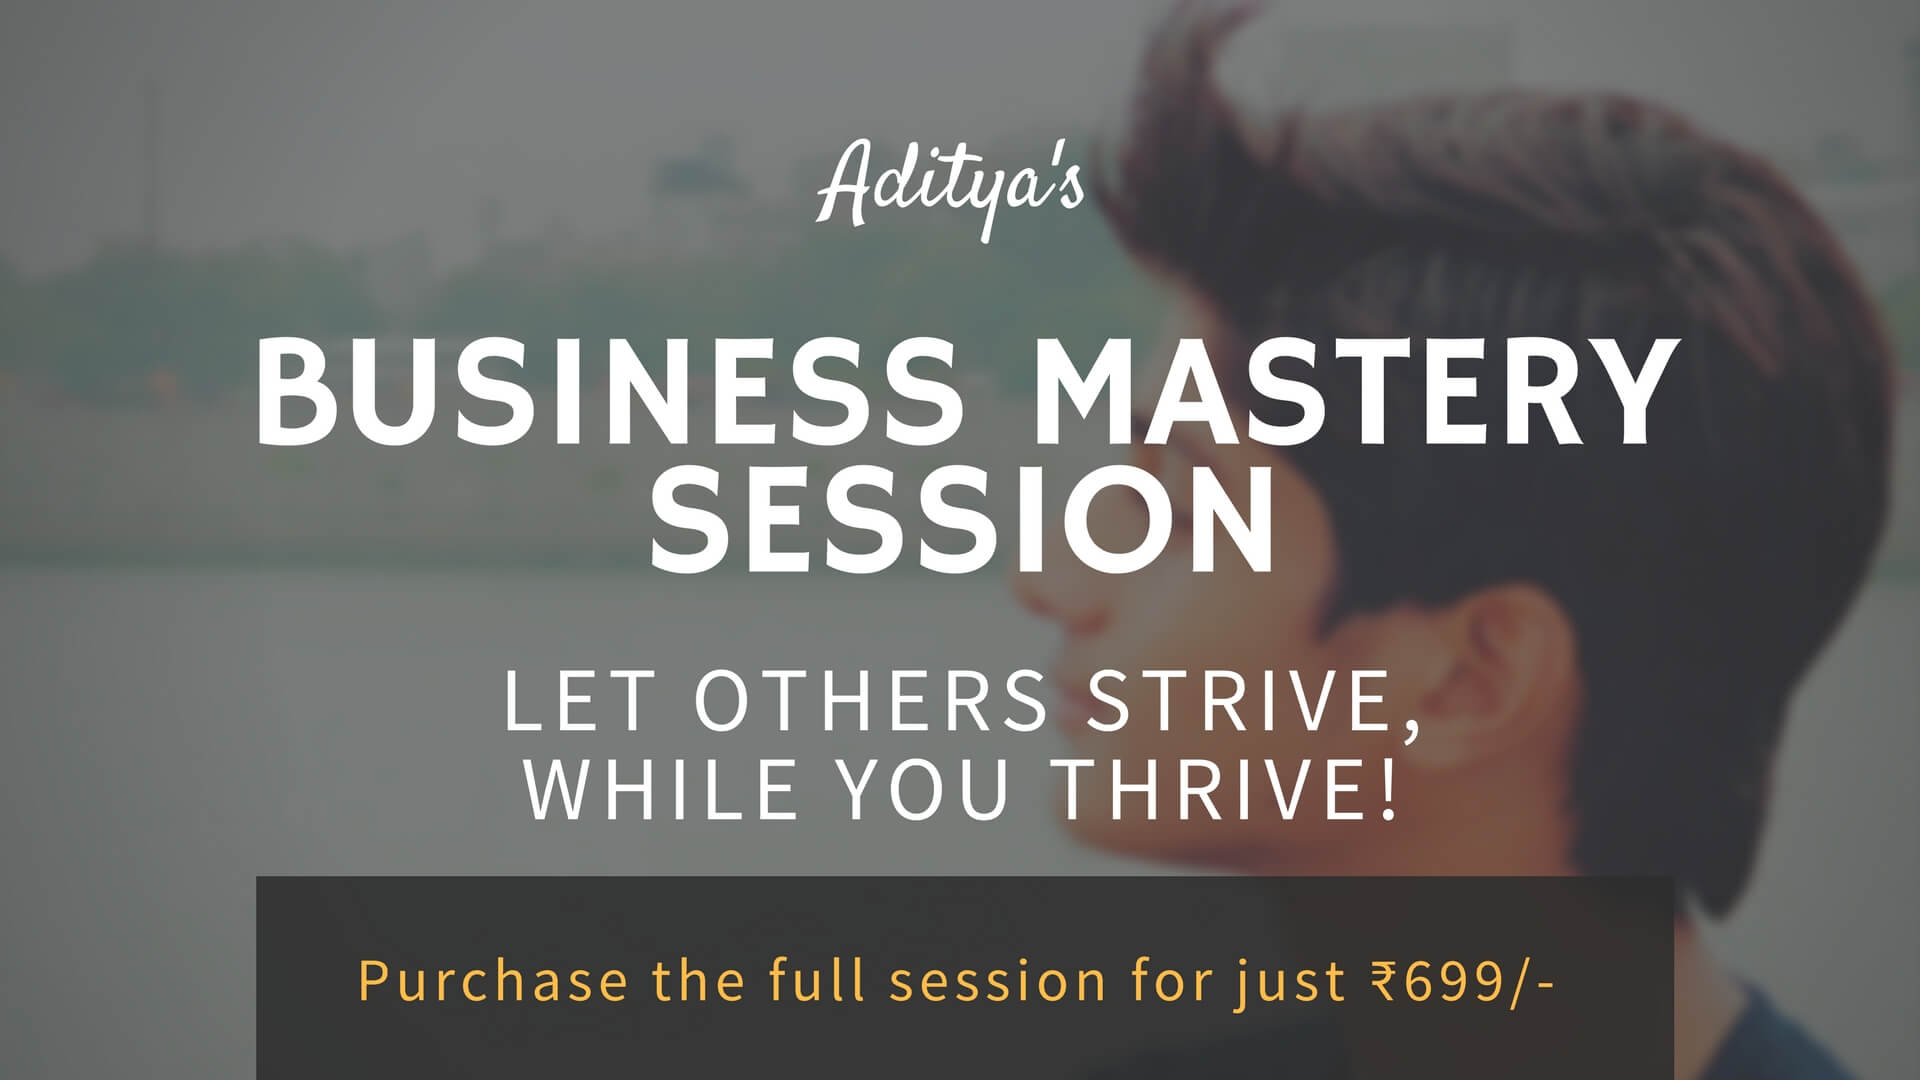 Aditya's Business Mastery Session